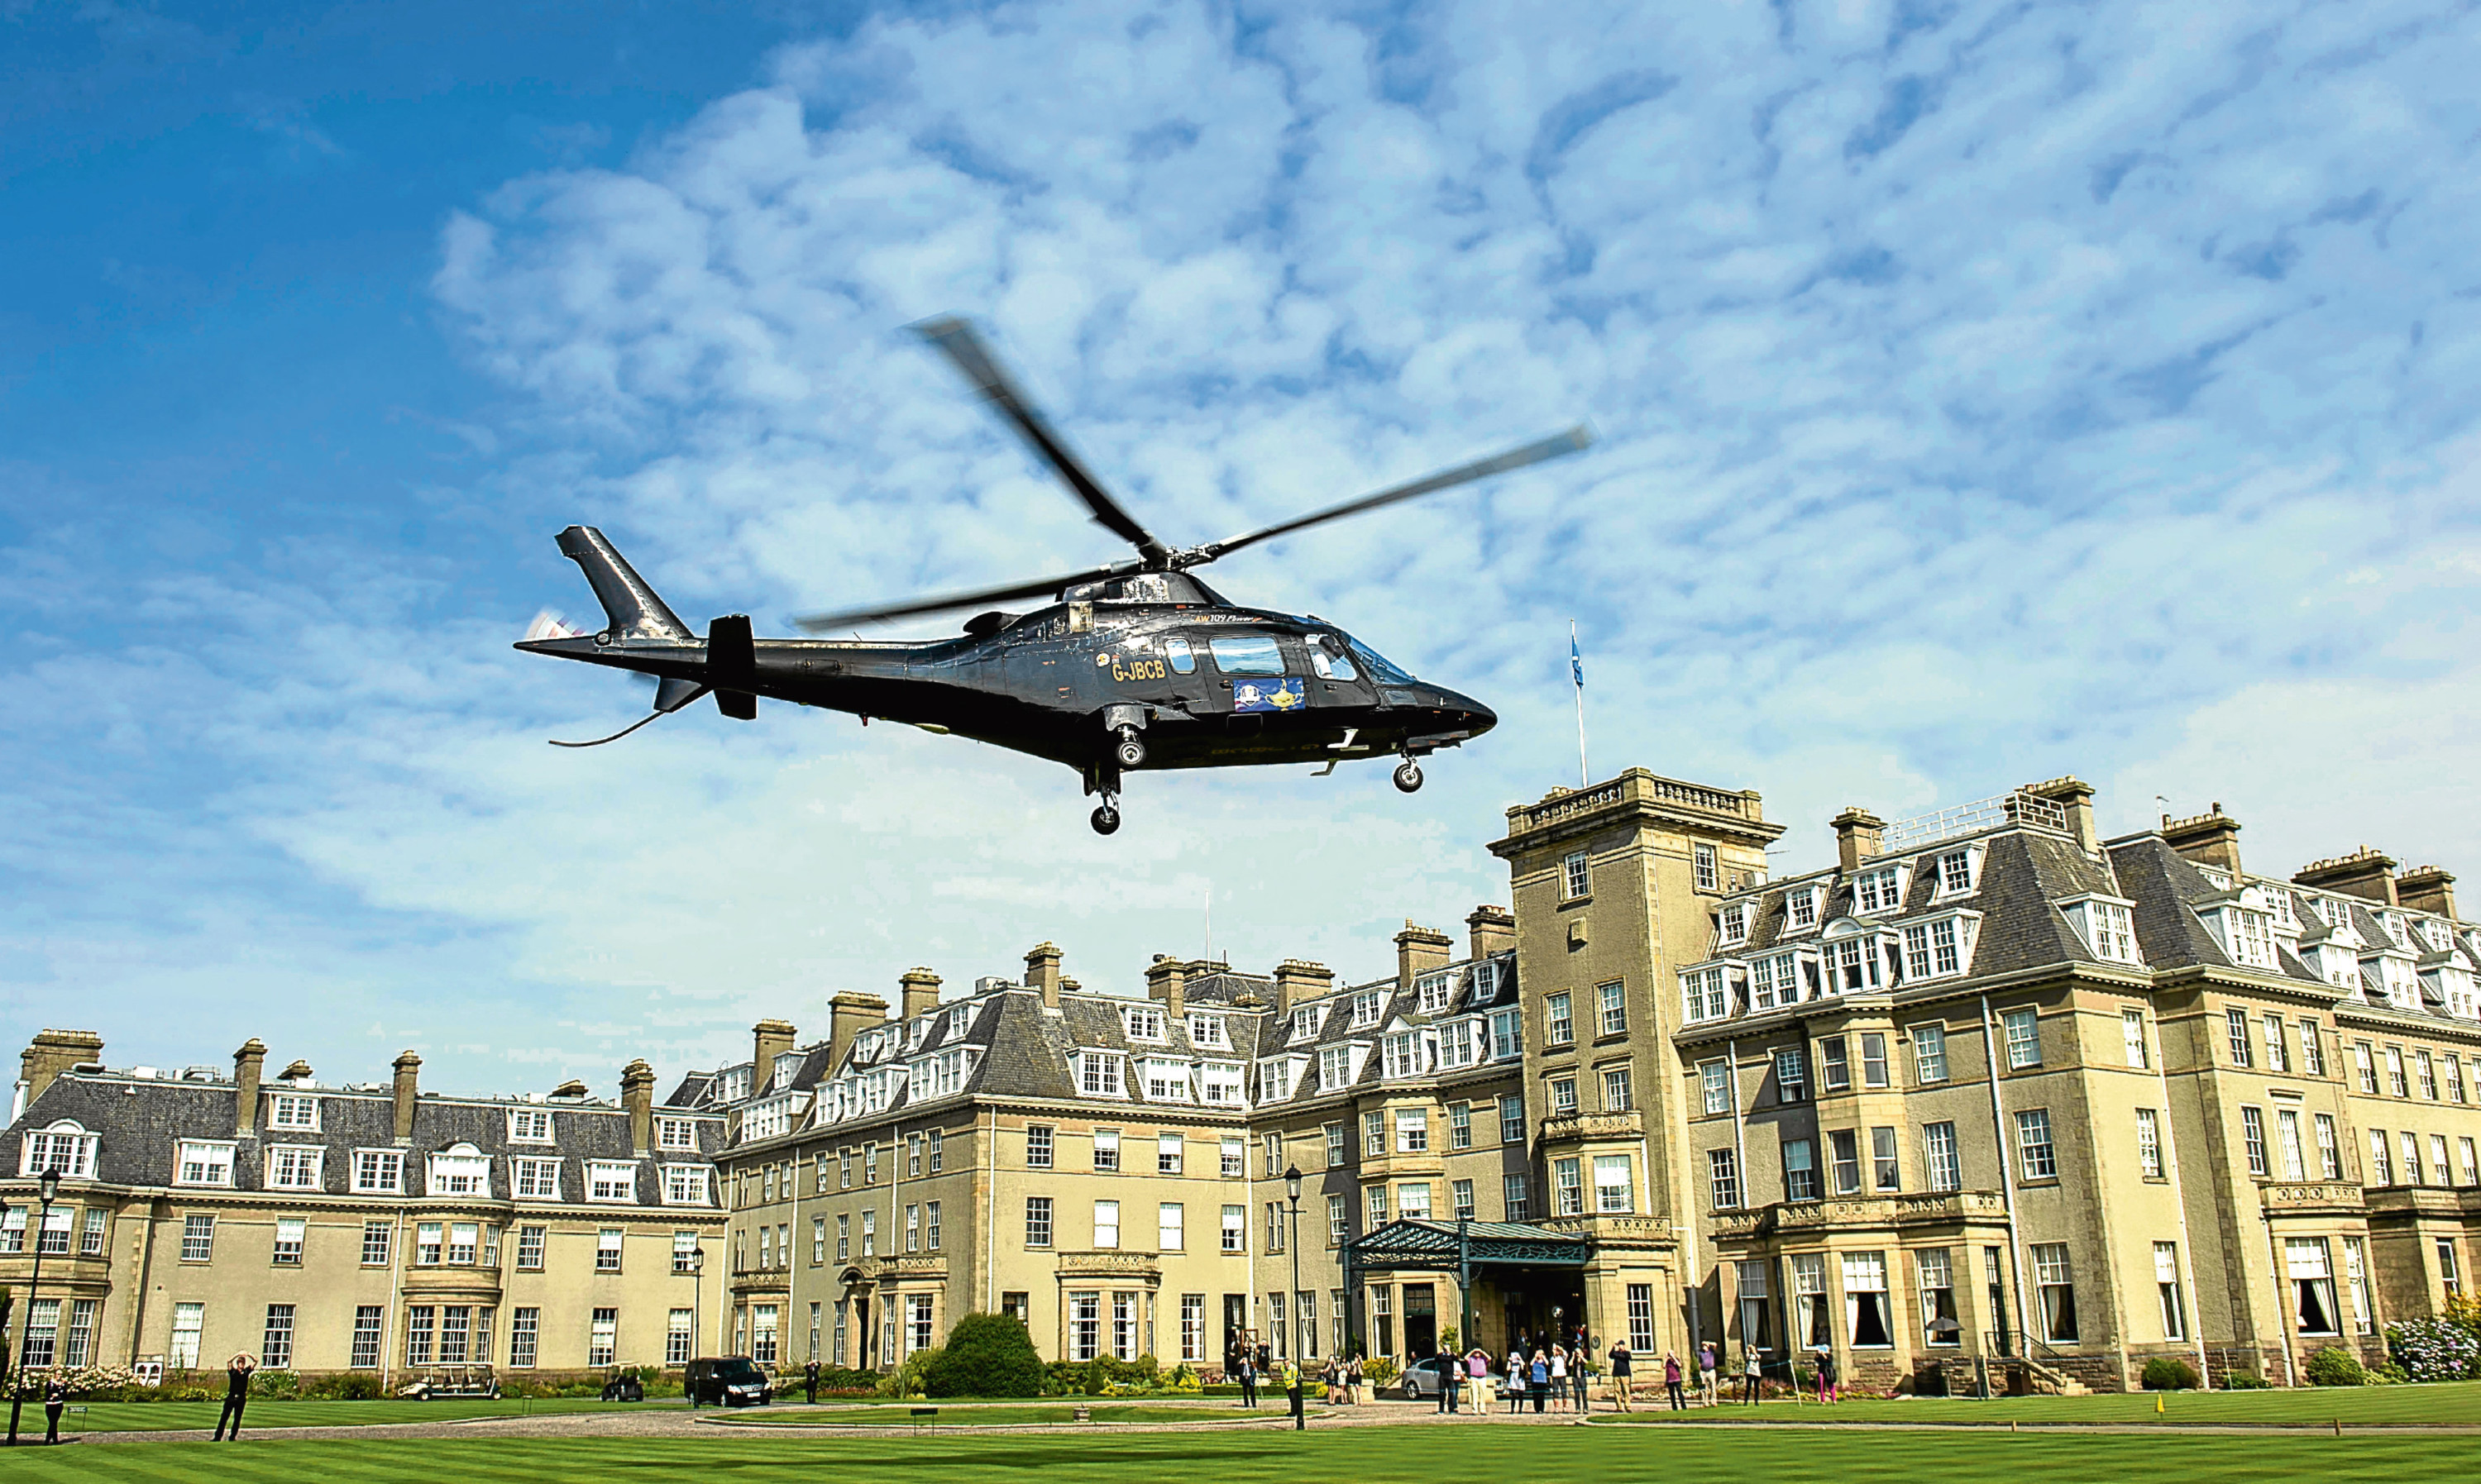 A helicopter lands at Gleneagles Hotel